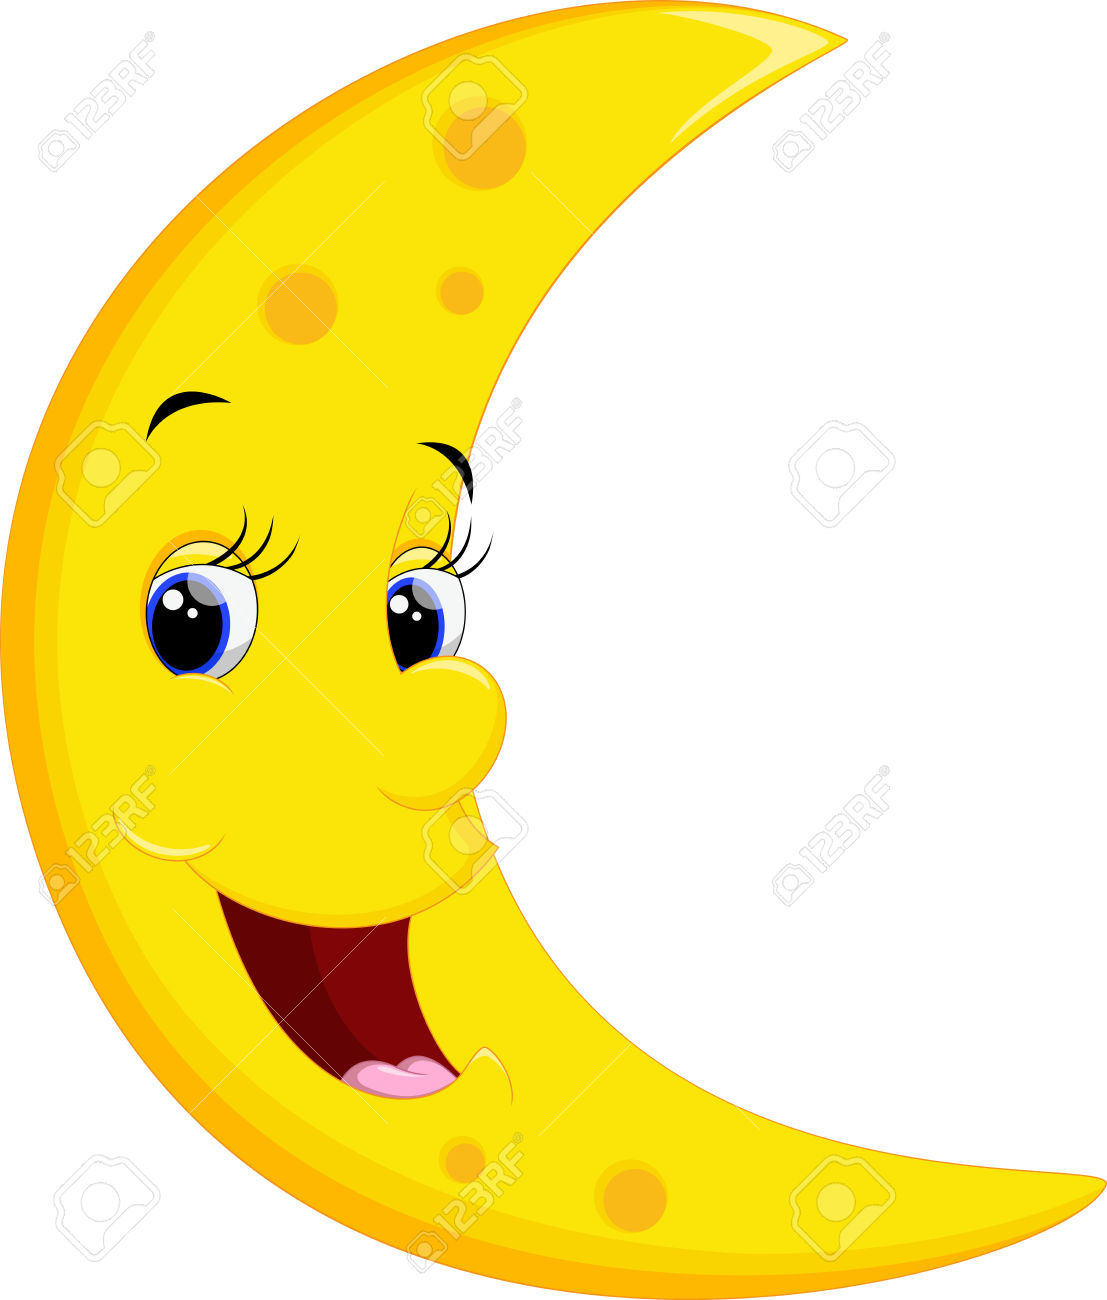 4,884 Moon Face Stock Vector Illustration And Royalty Free Moon.